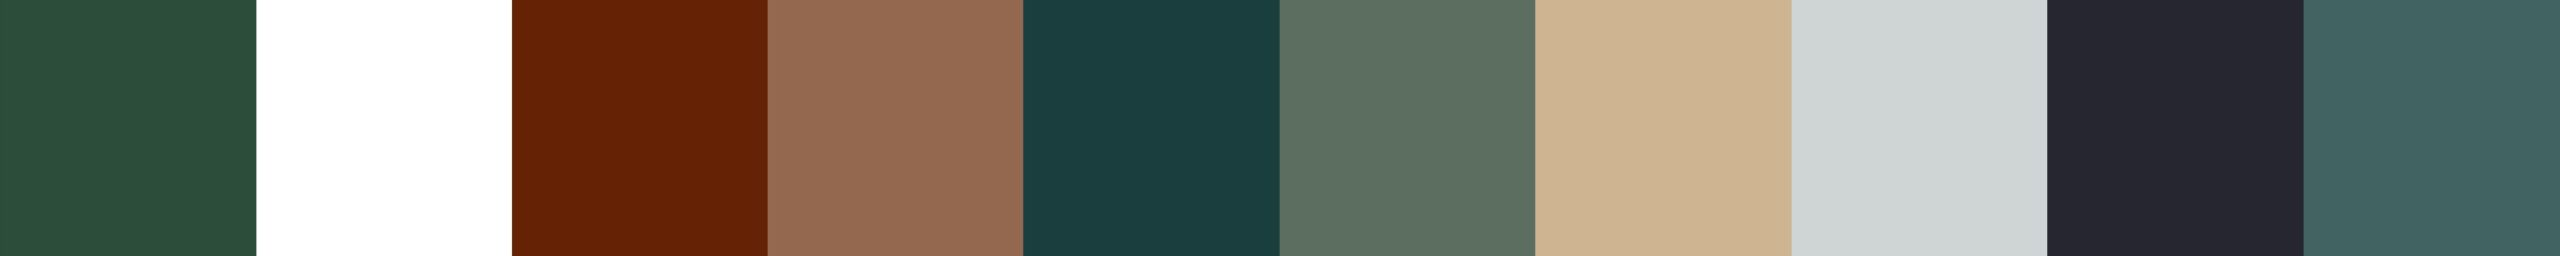 502 Ferlovia Color Palette